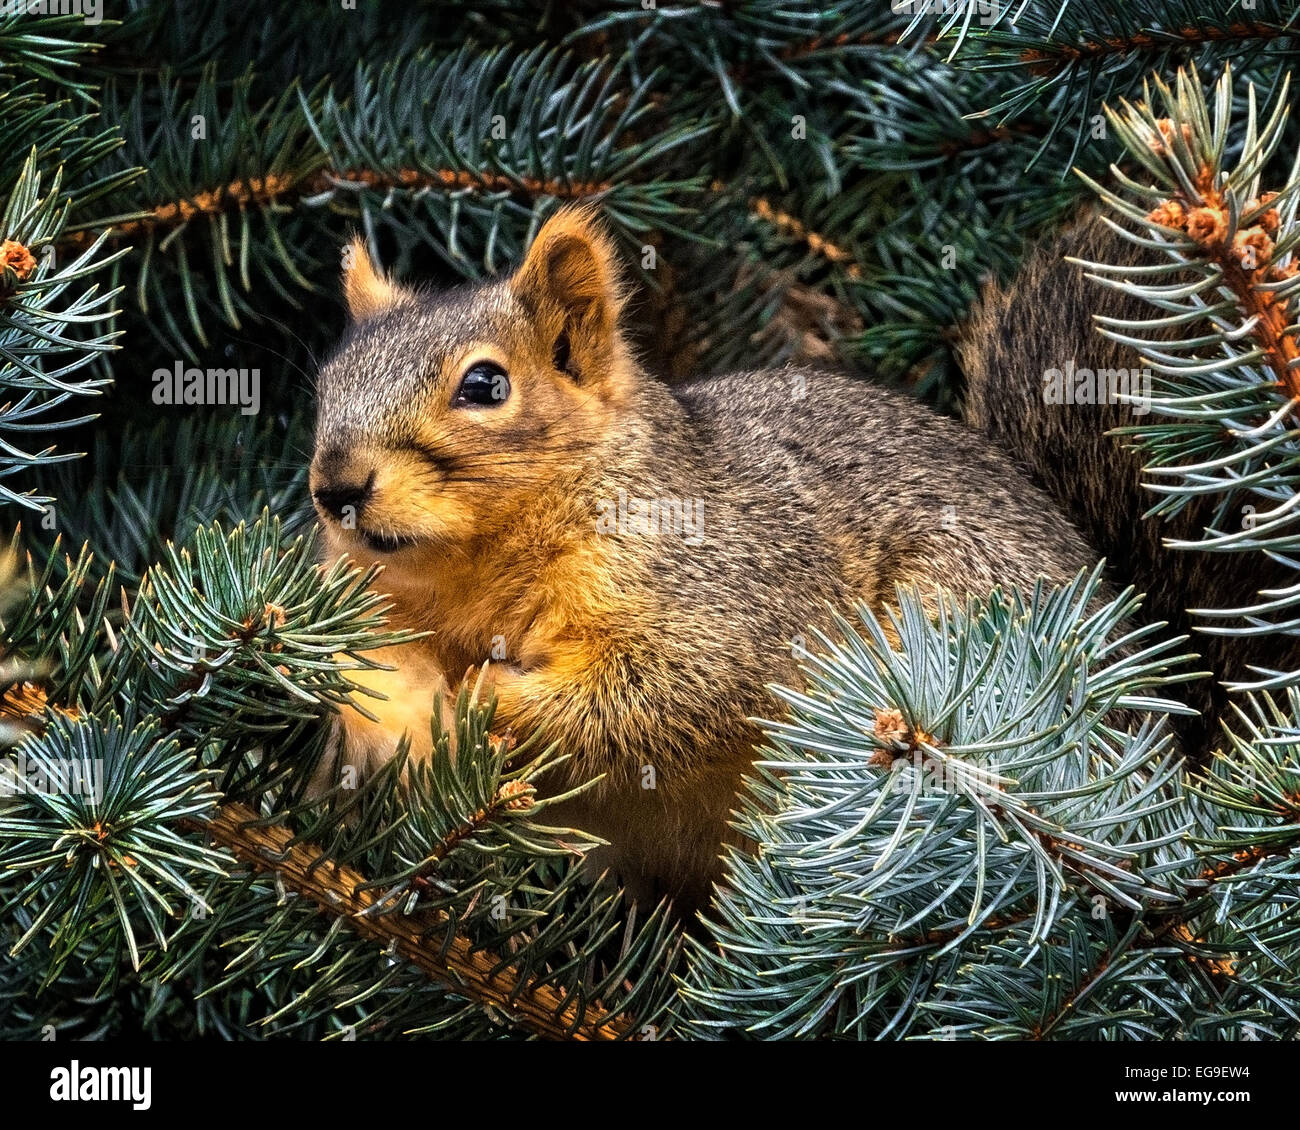 Close-up of squirrel in pine branches - Stock Image